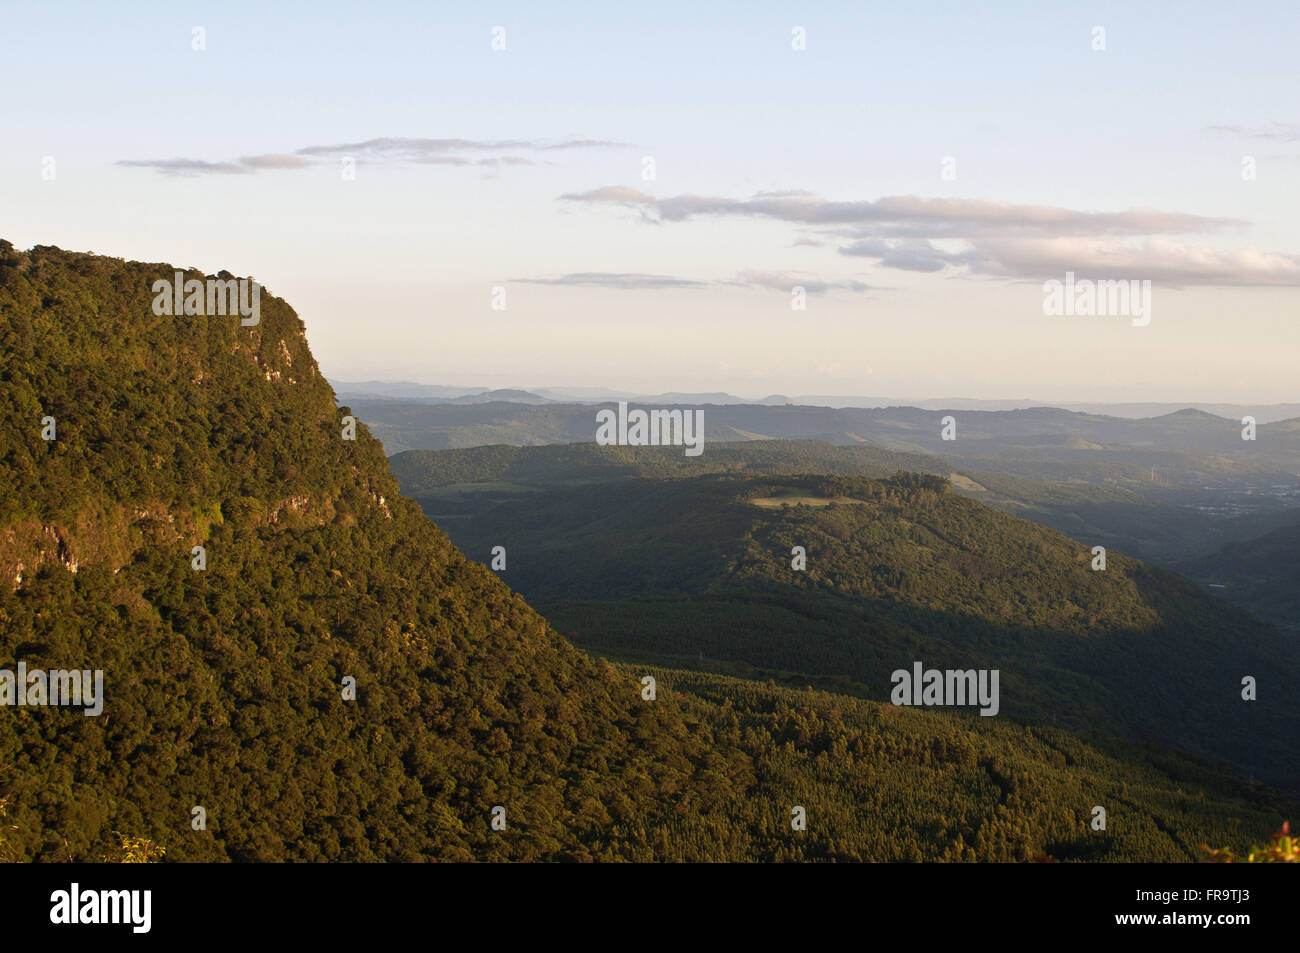 Quilombo Valley seen from the viewpoint of Stone Slab park in Canela - RS - Stock Image